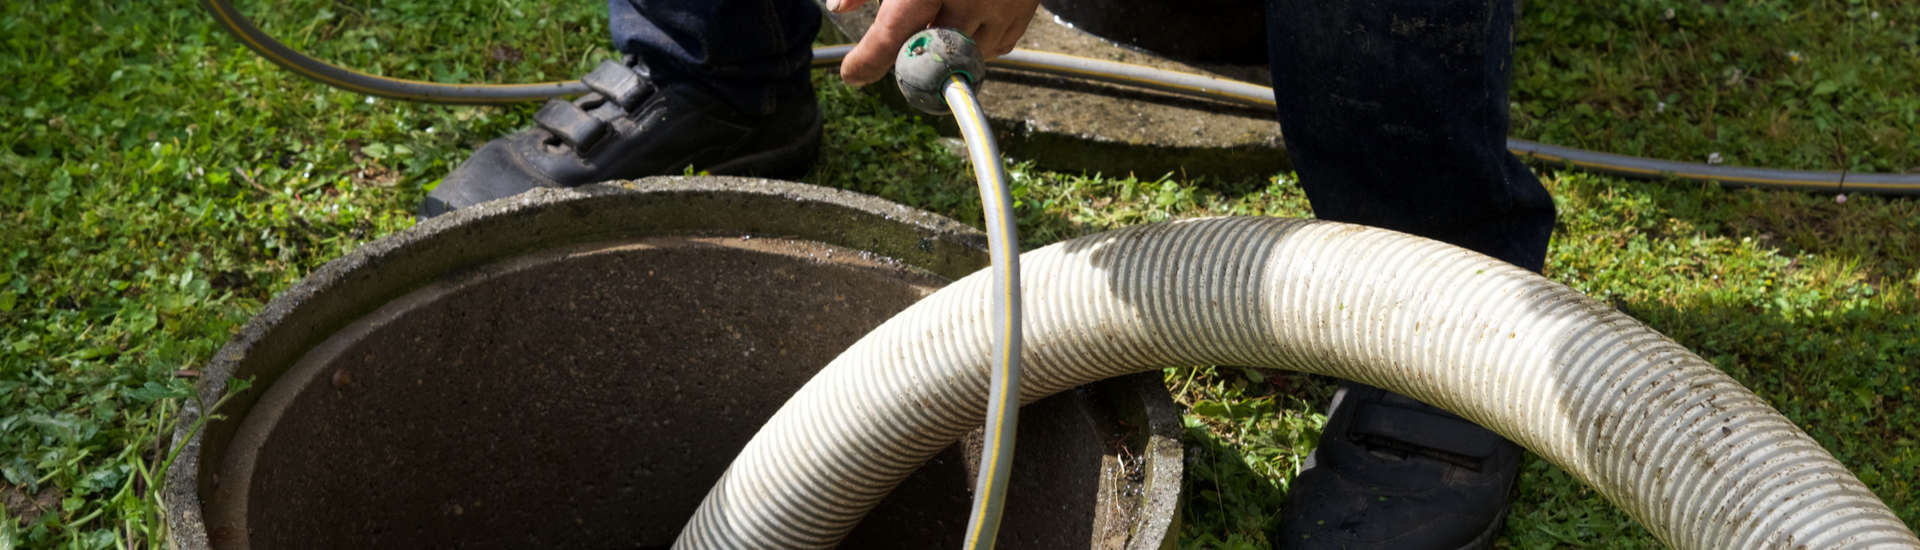 Sewer Cleaning Farmer City IL